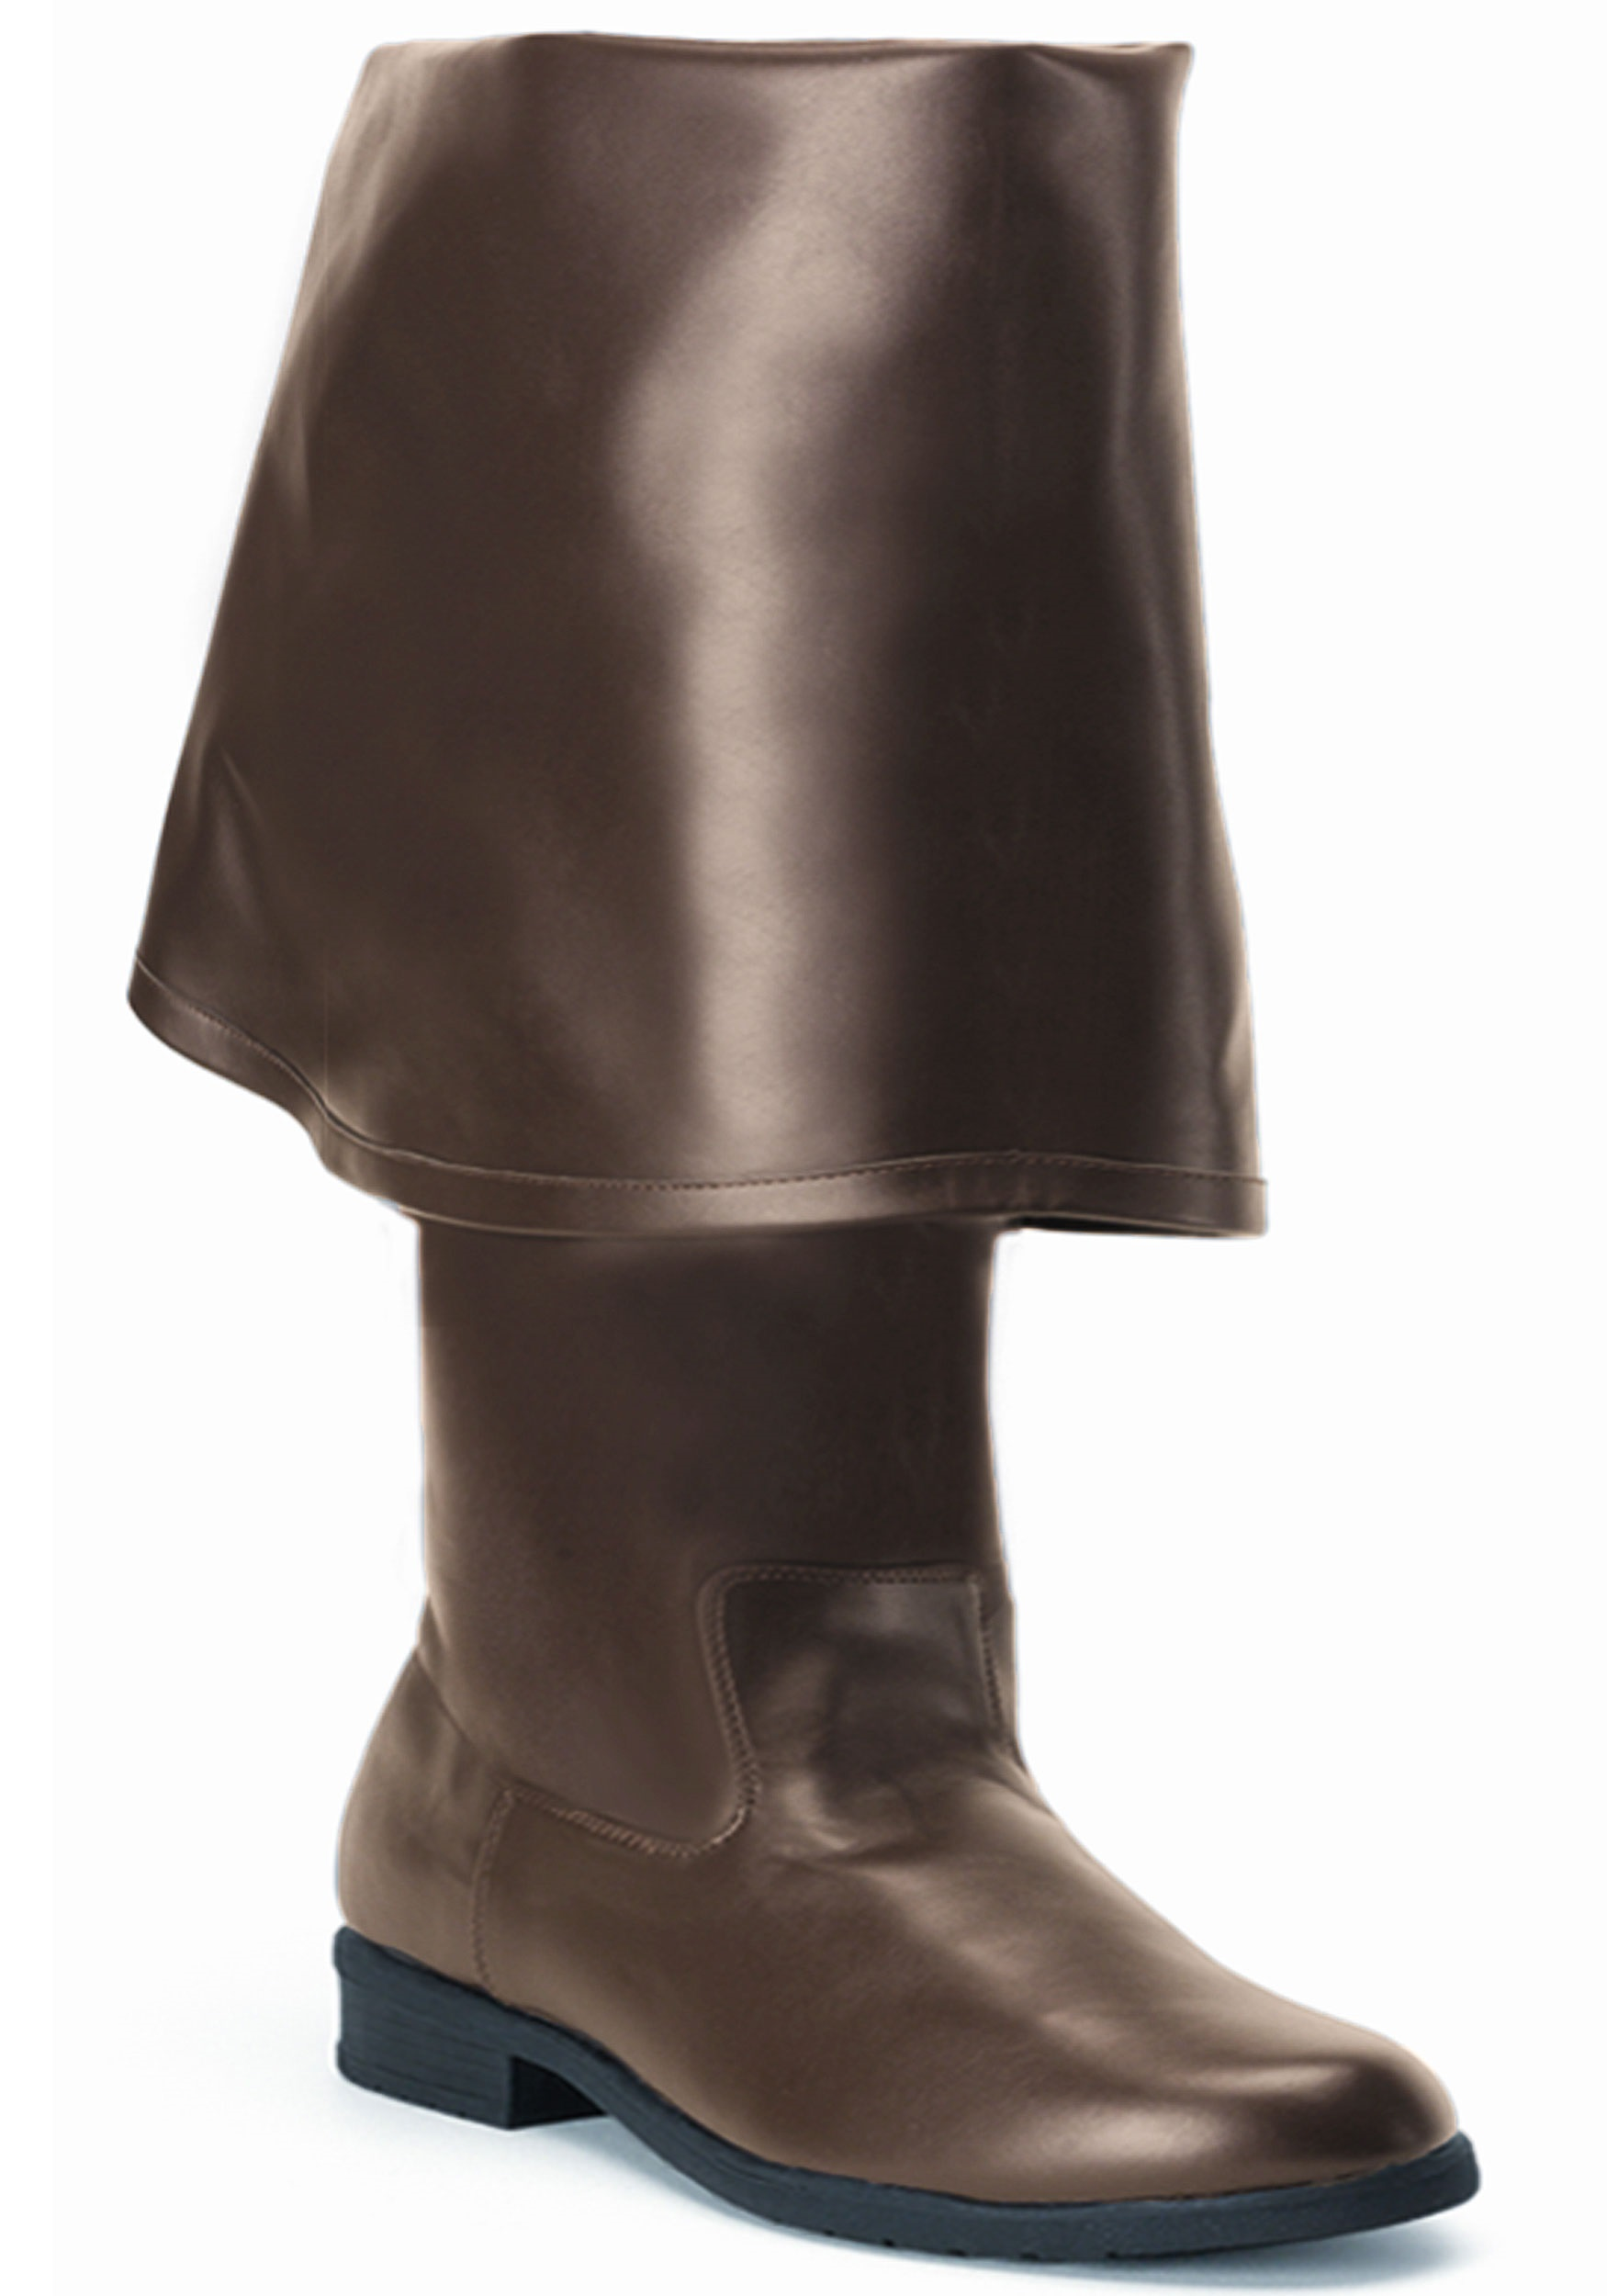 Realistic Brown Pirate Costume Boots